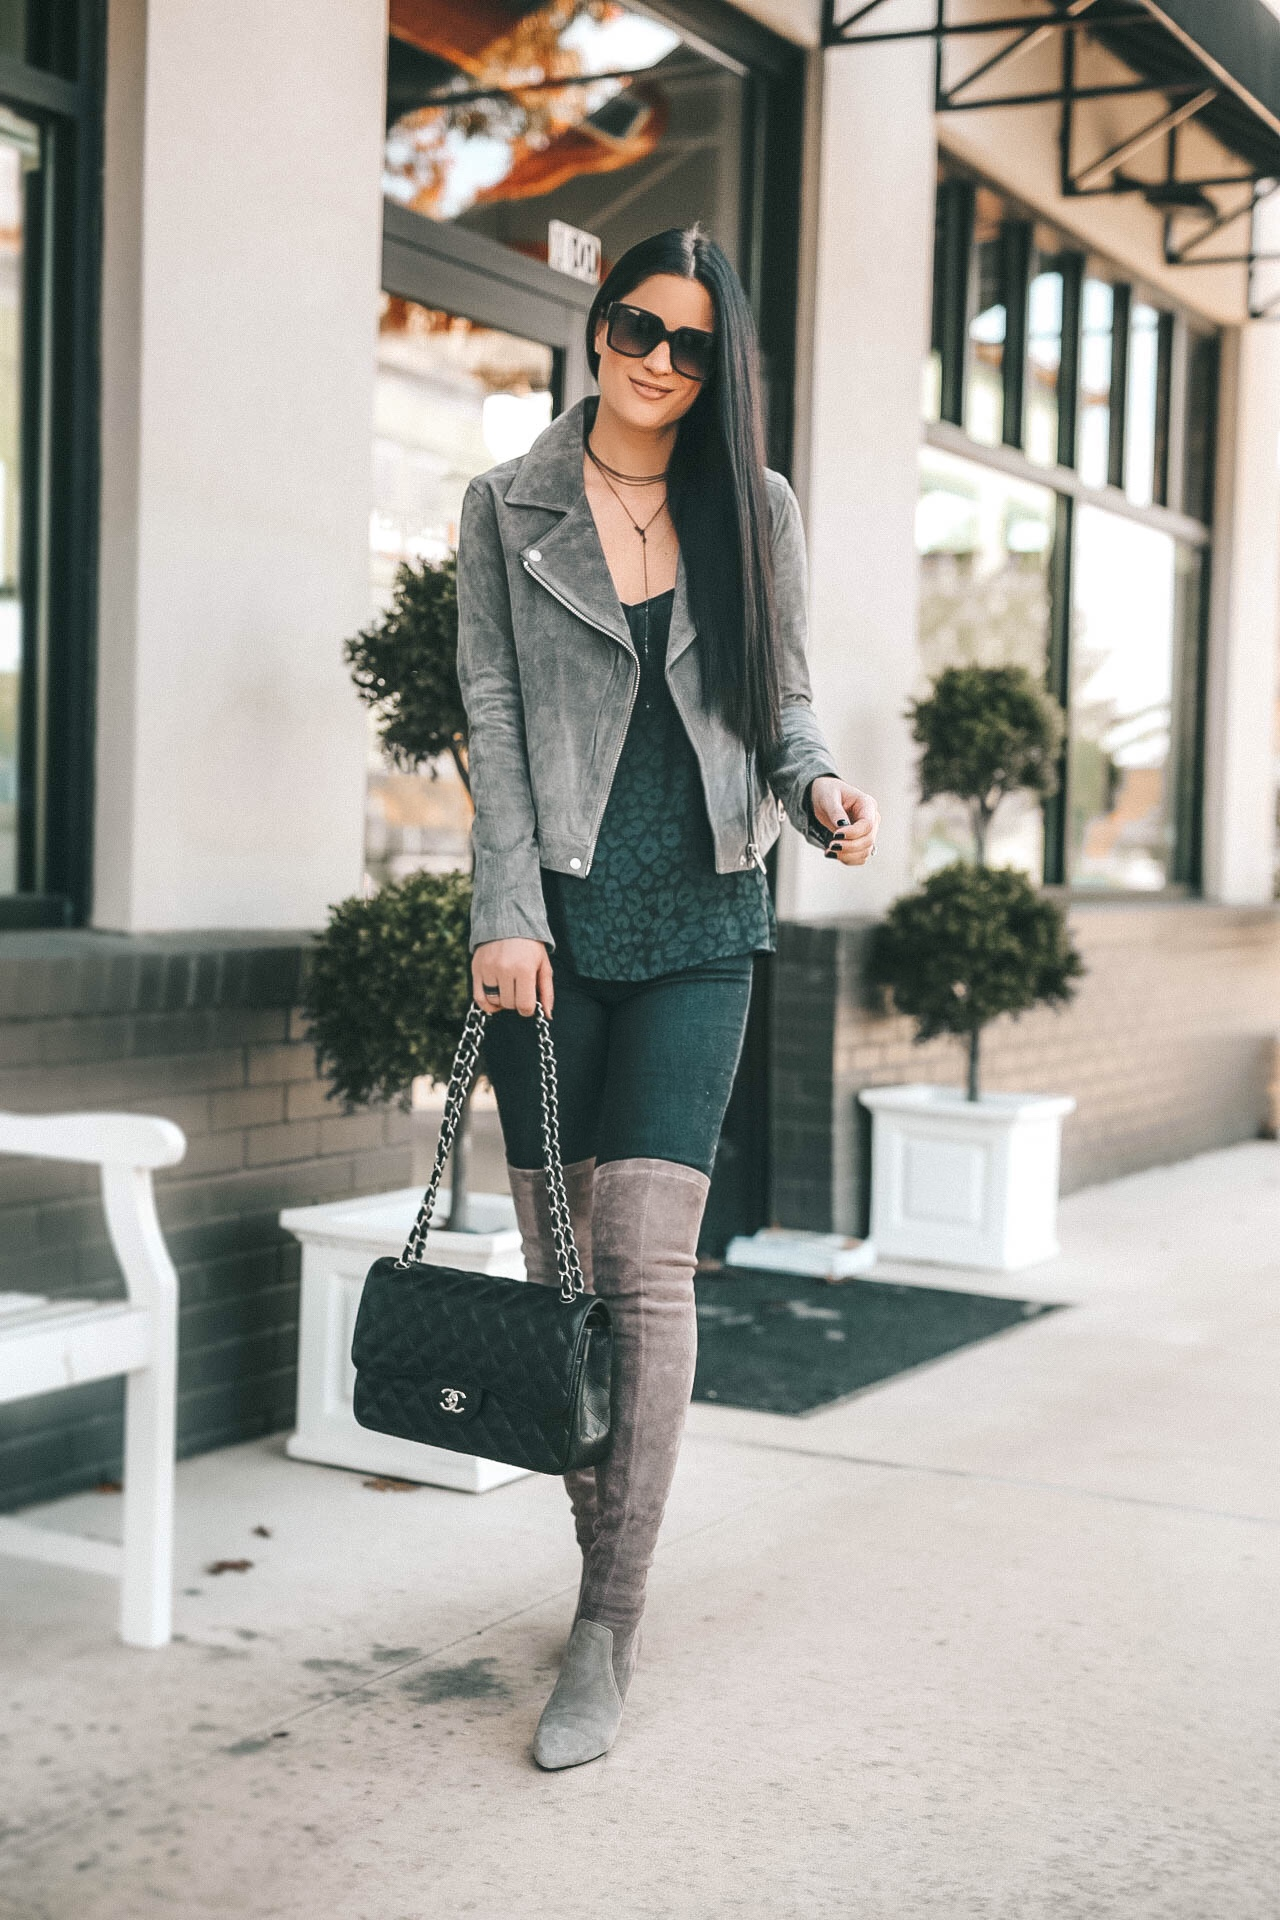 DTKAustin is sharing affordable designer jewelry holiday gift ideas from Armenta. Handbag is a Black caviar Chanel Jumbo, BlankNYC Moto Jacket, Suede OTK Boots from Goodnight Macaroon || Dressed to Kill #armenta #designerjewelry #suedeboots #motojacket #dtkaustin